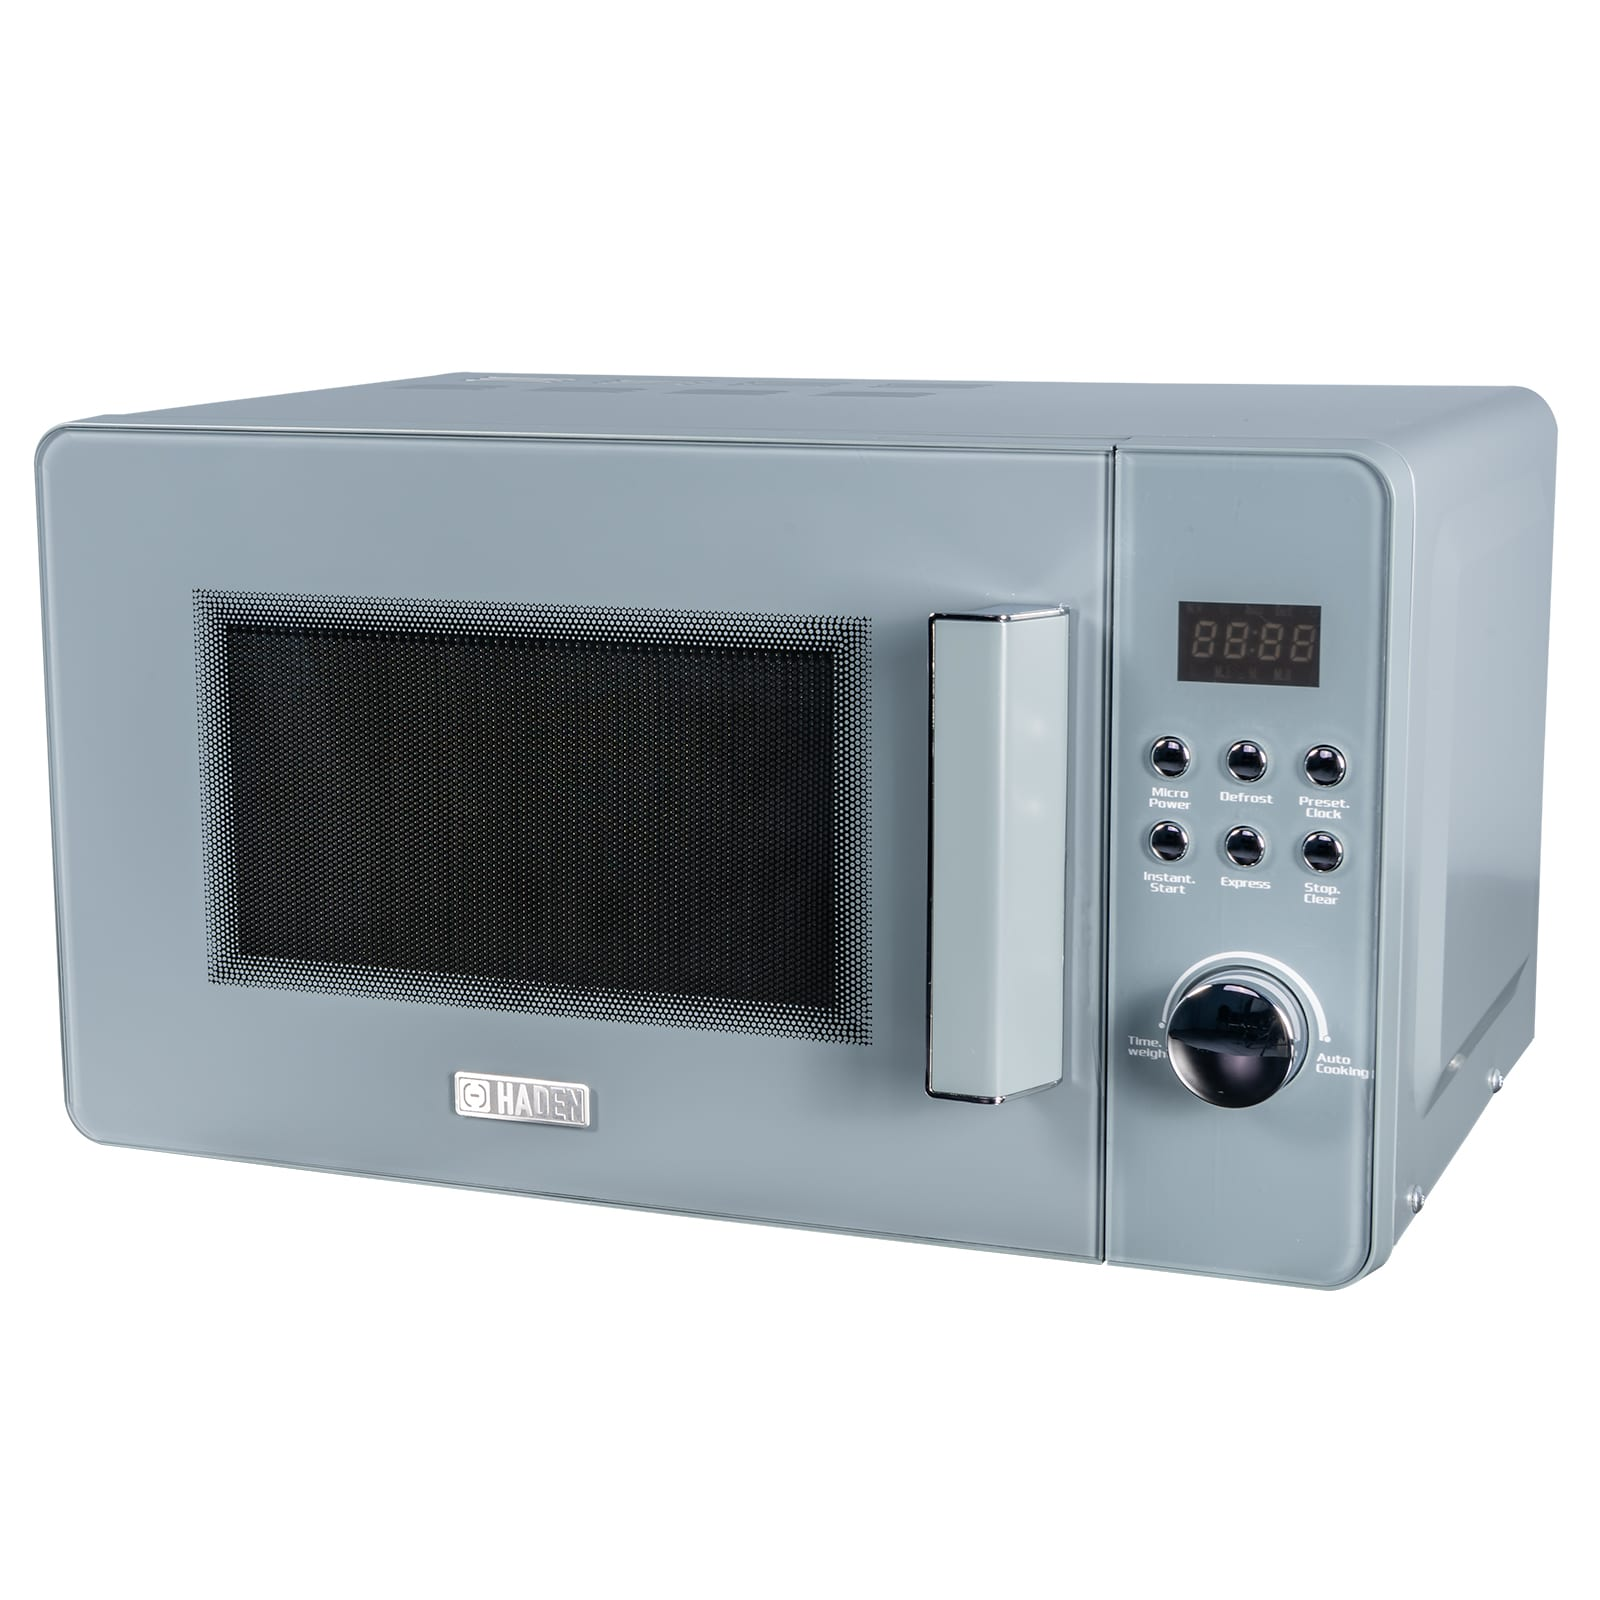 Kitchen Appliances Perth Haden Perth 186690 20l Slate Grey 800w Freestanding Microwave Oven